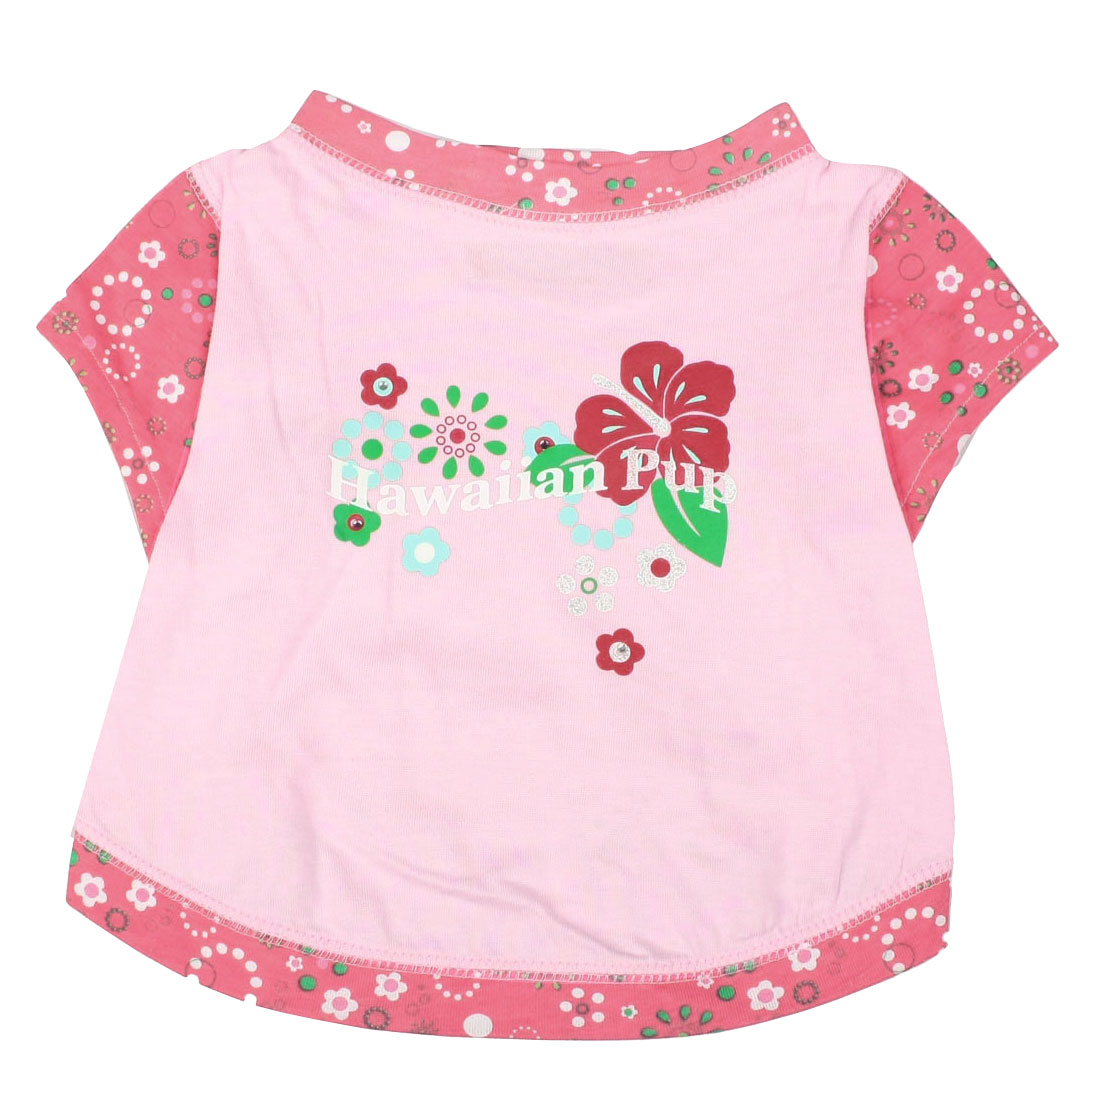 Size L Summer Short Sleeves Flower Pet Dog Clothes Pink Shirt Blouse Pullover